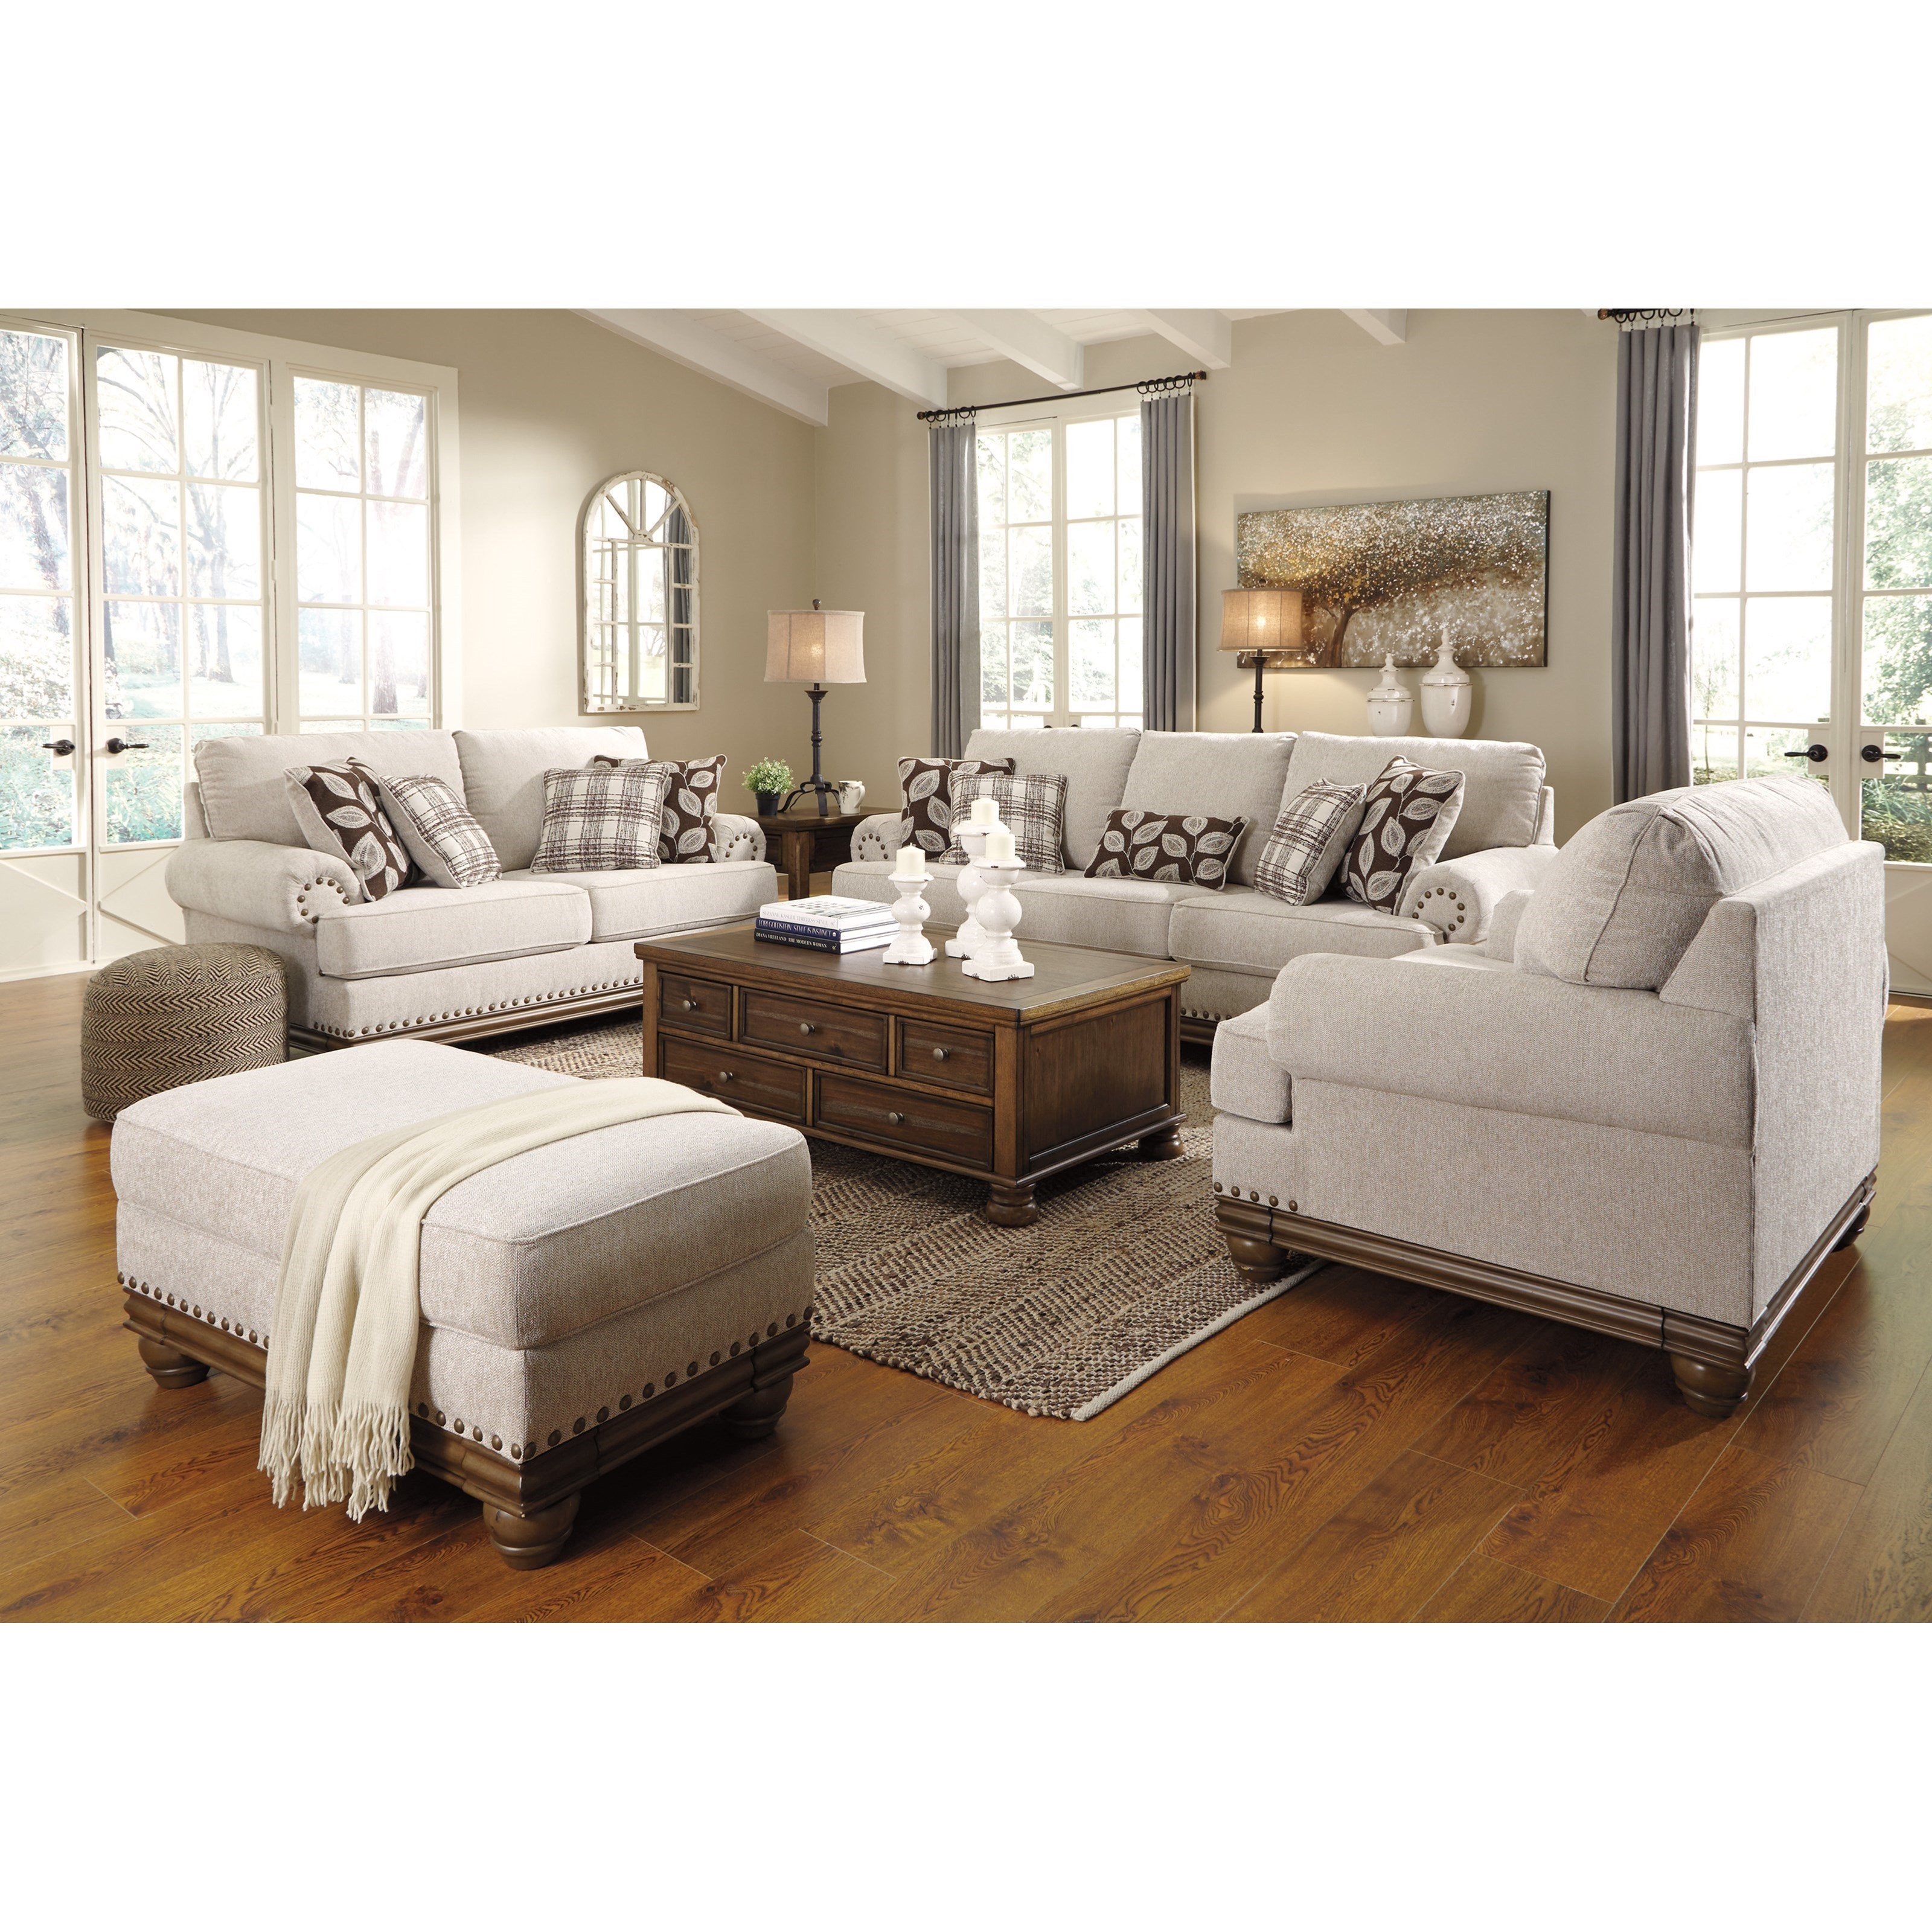 Harleson Stationary Living Room Group by Signature Design by Ashley at Northeast Factory Direct